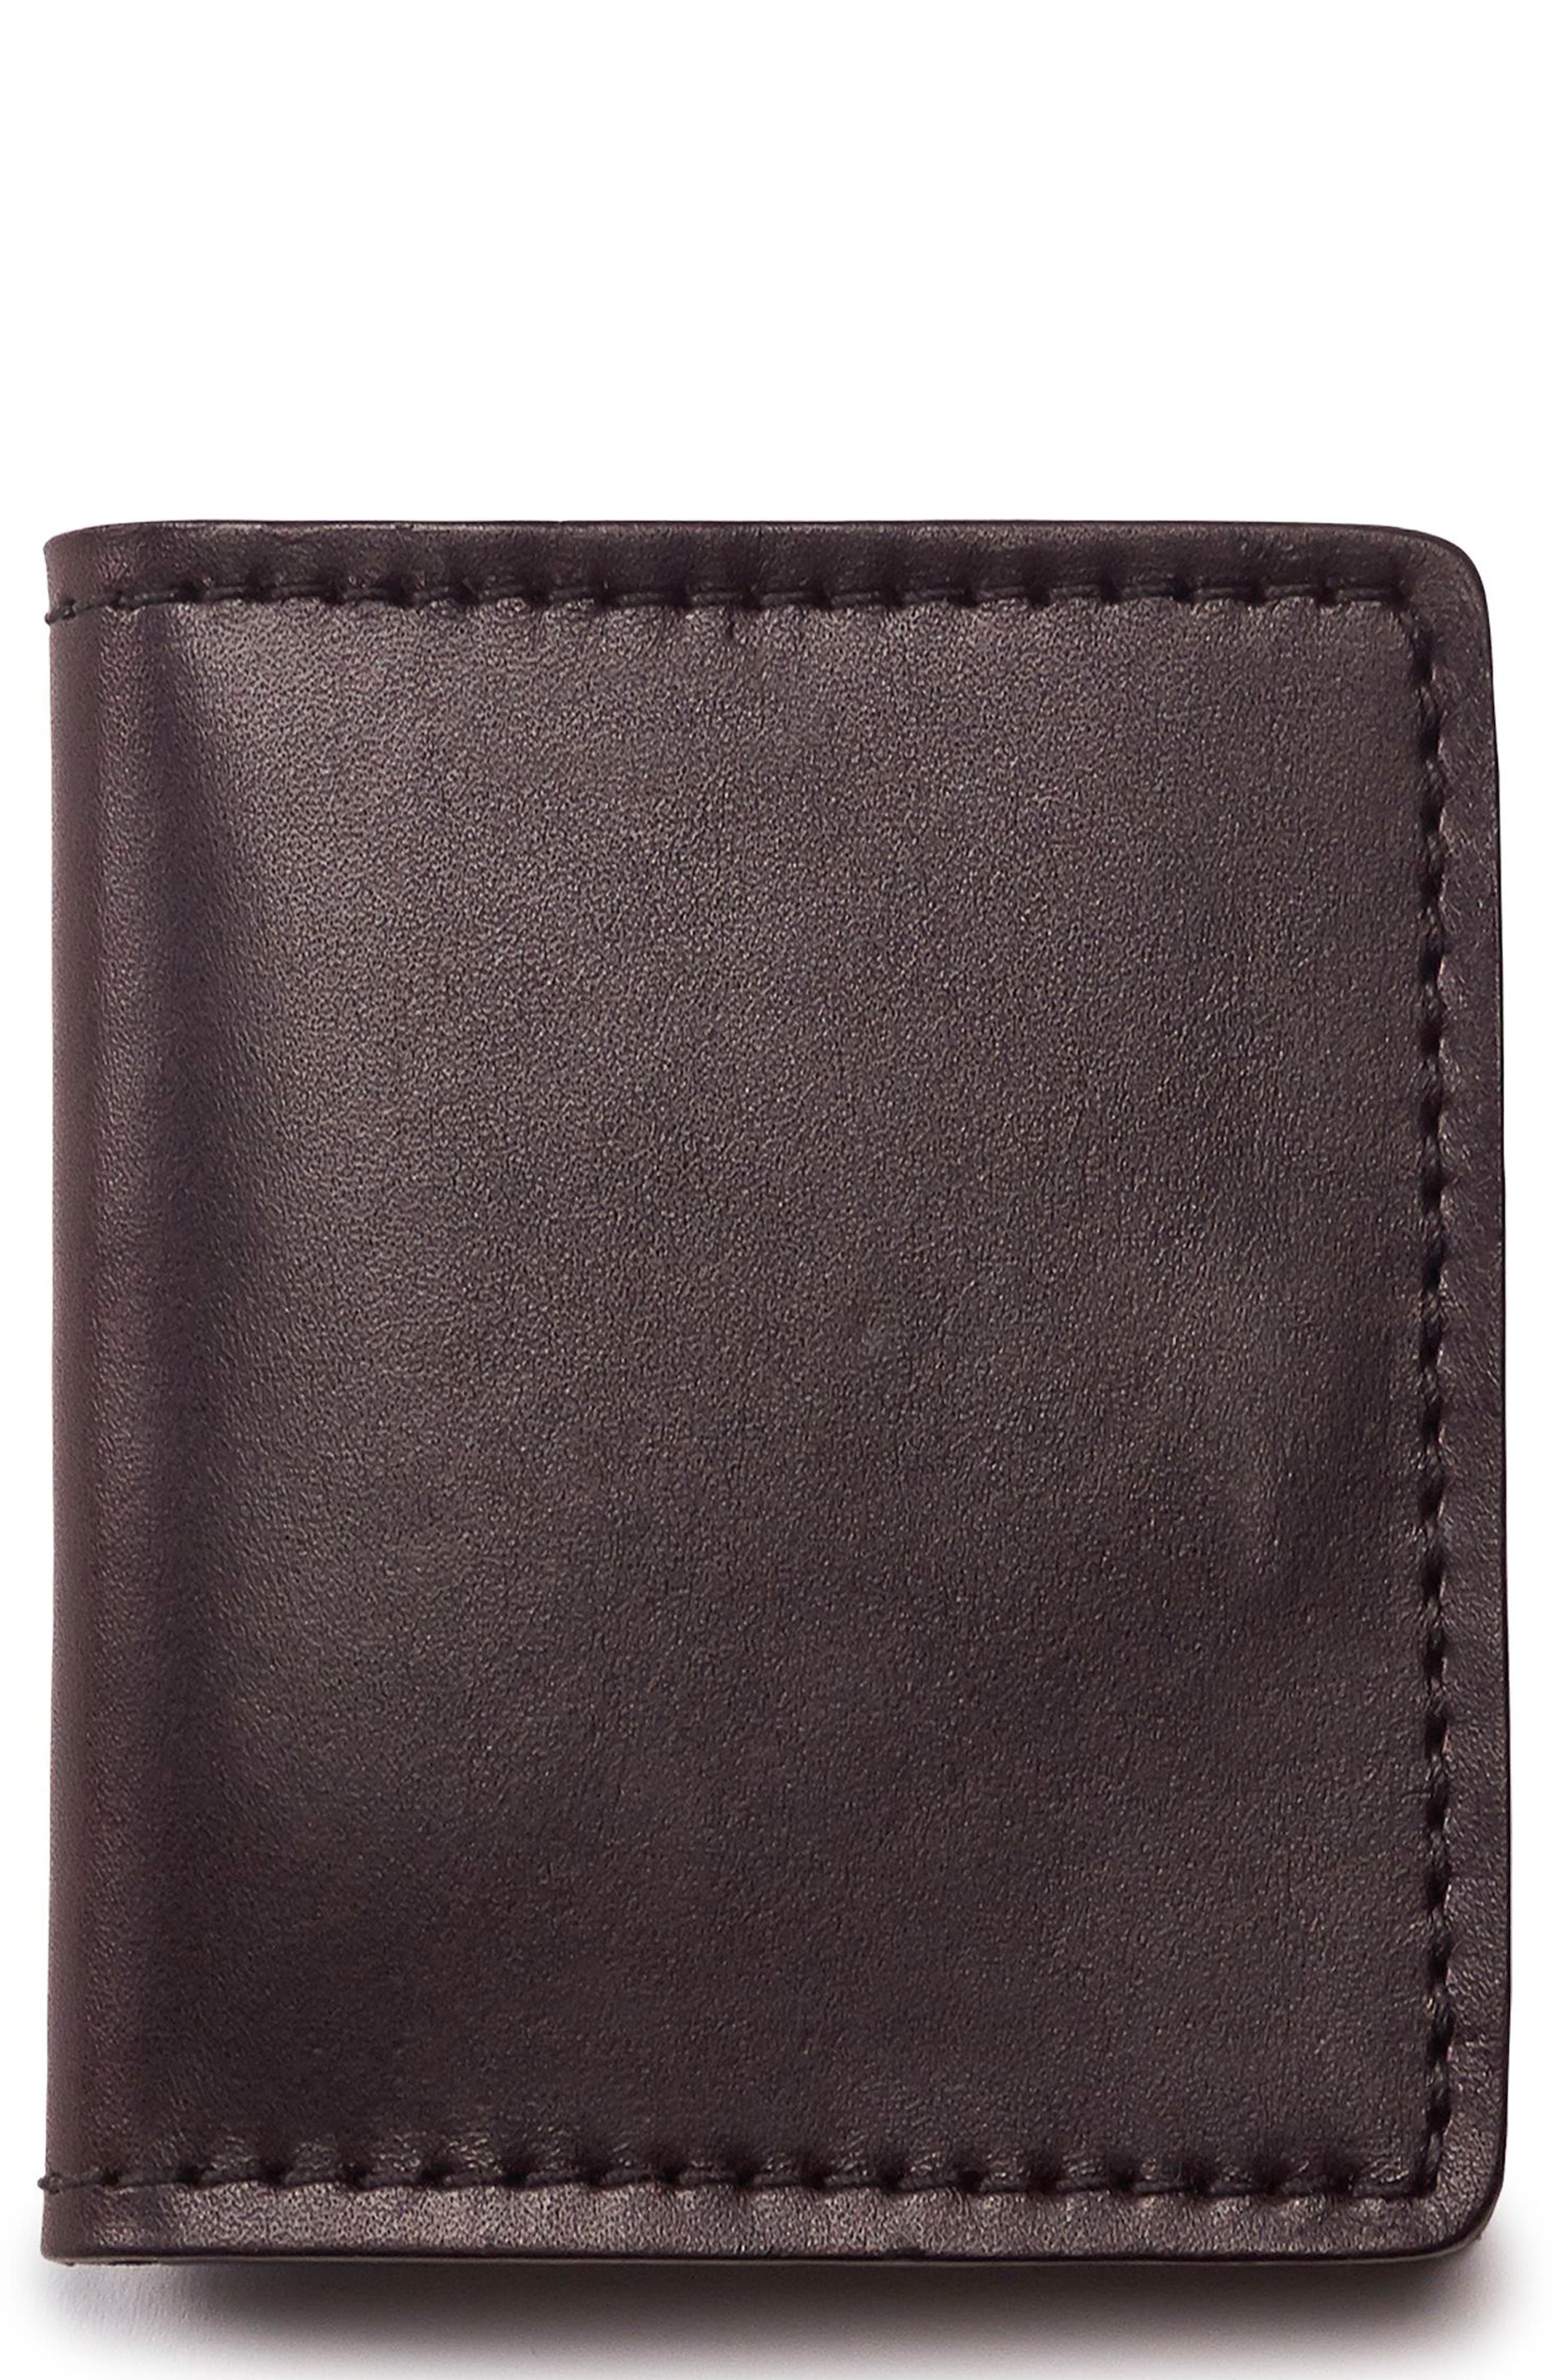 Alternate Image 1 Selected - Filson Leather Bifold Cash & Card Case